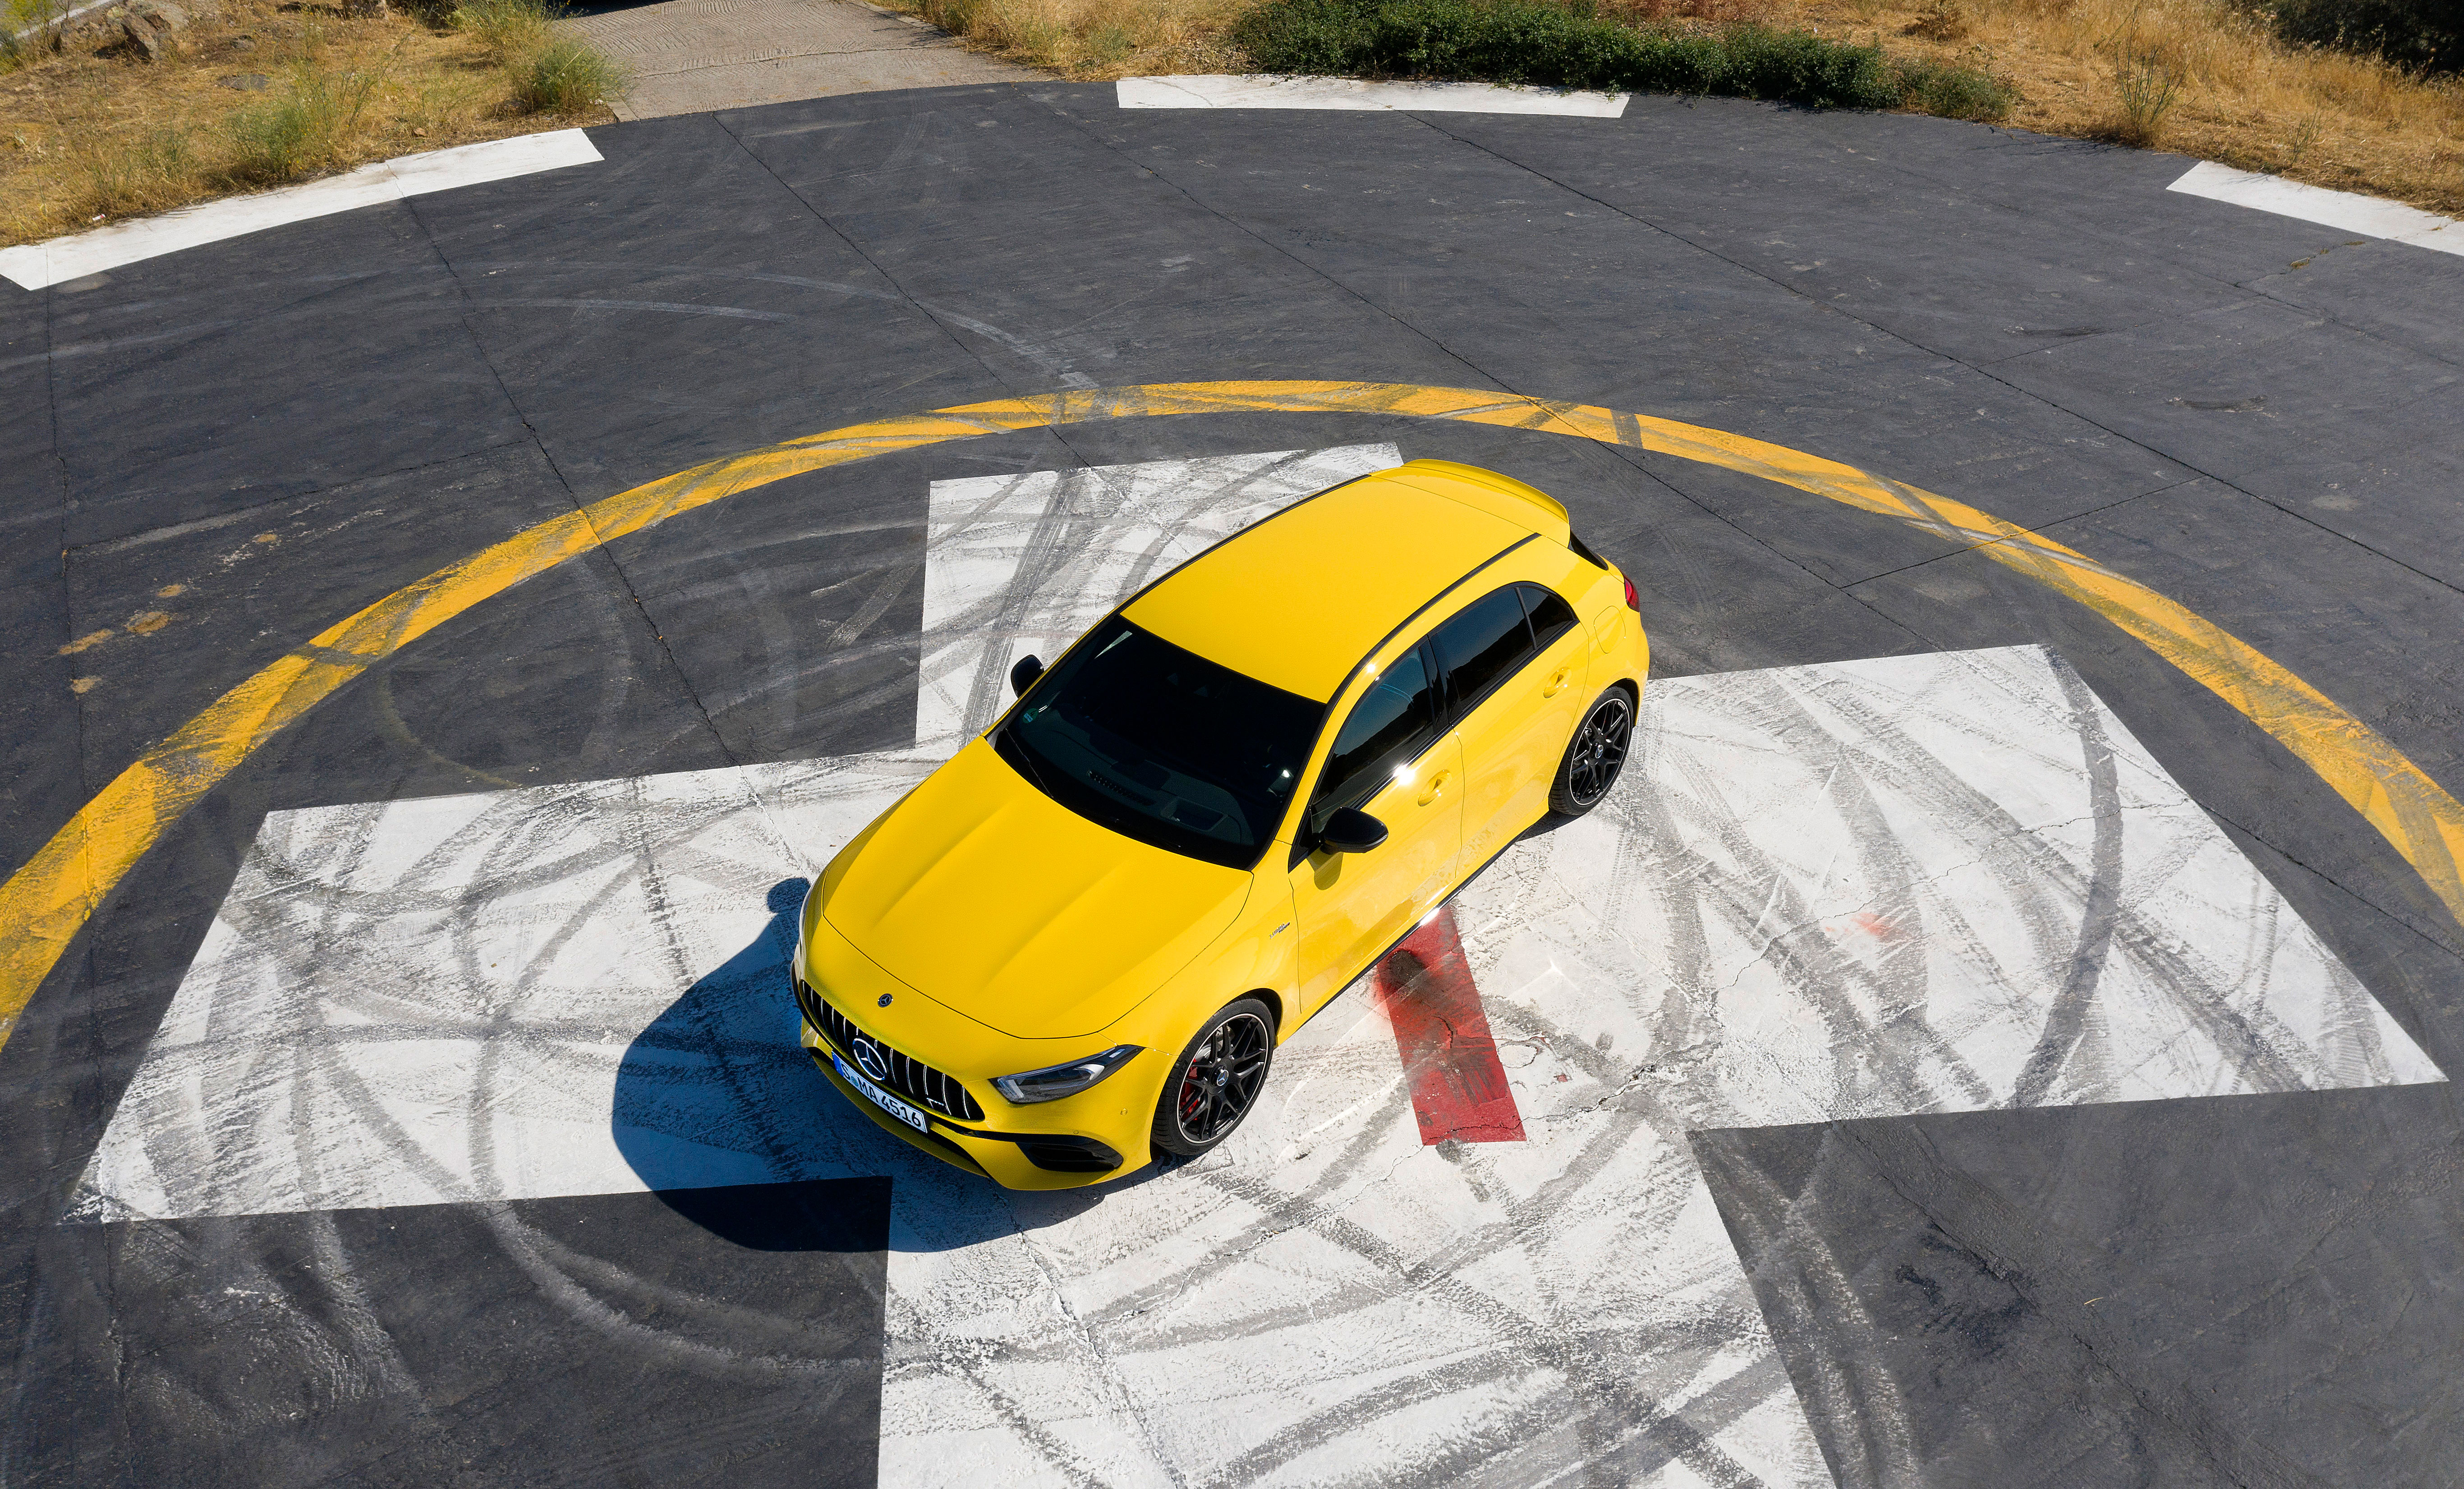 The A 45 blends outright performance and cornering ability